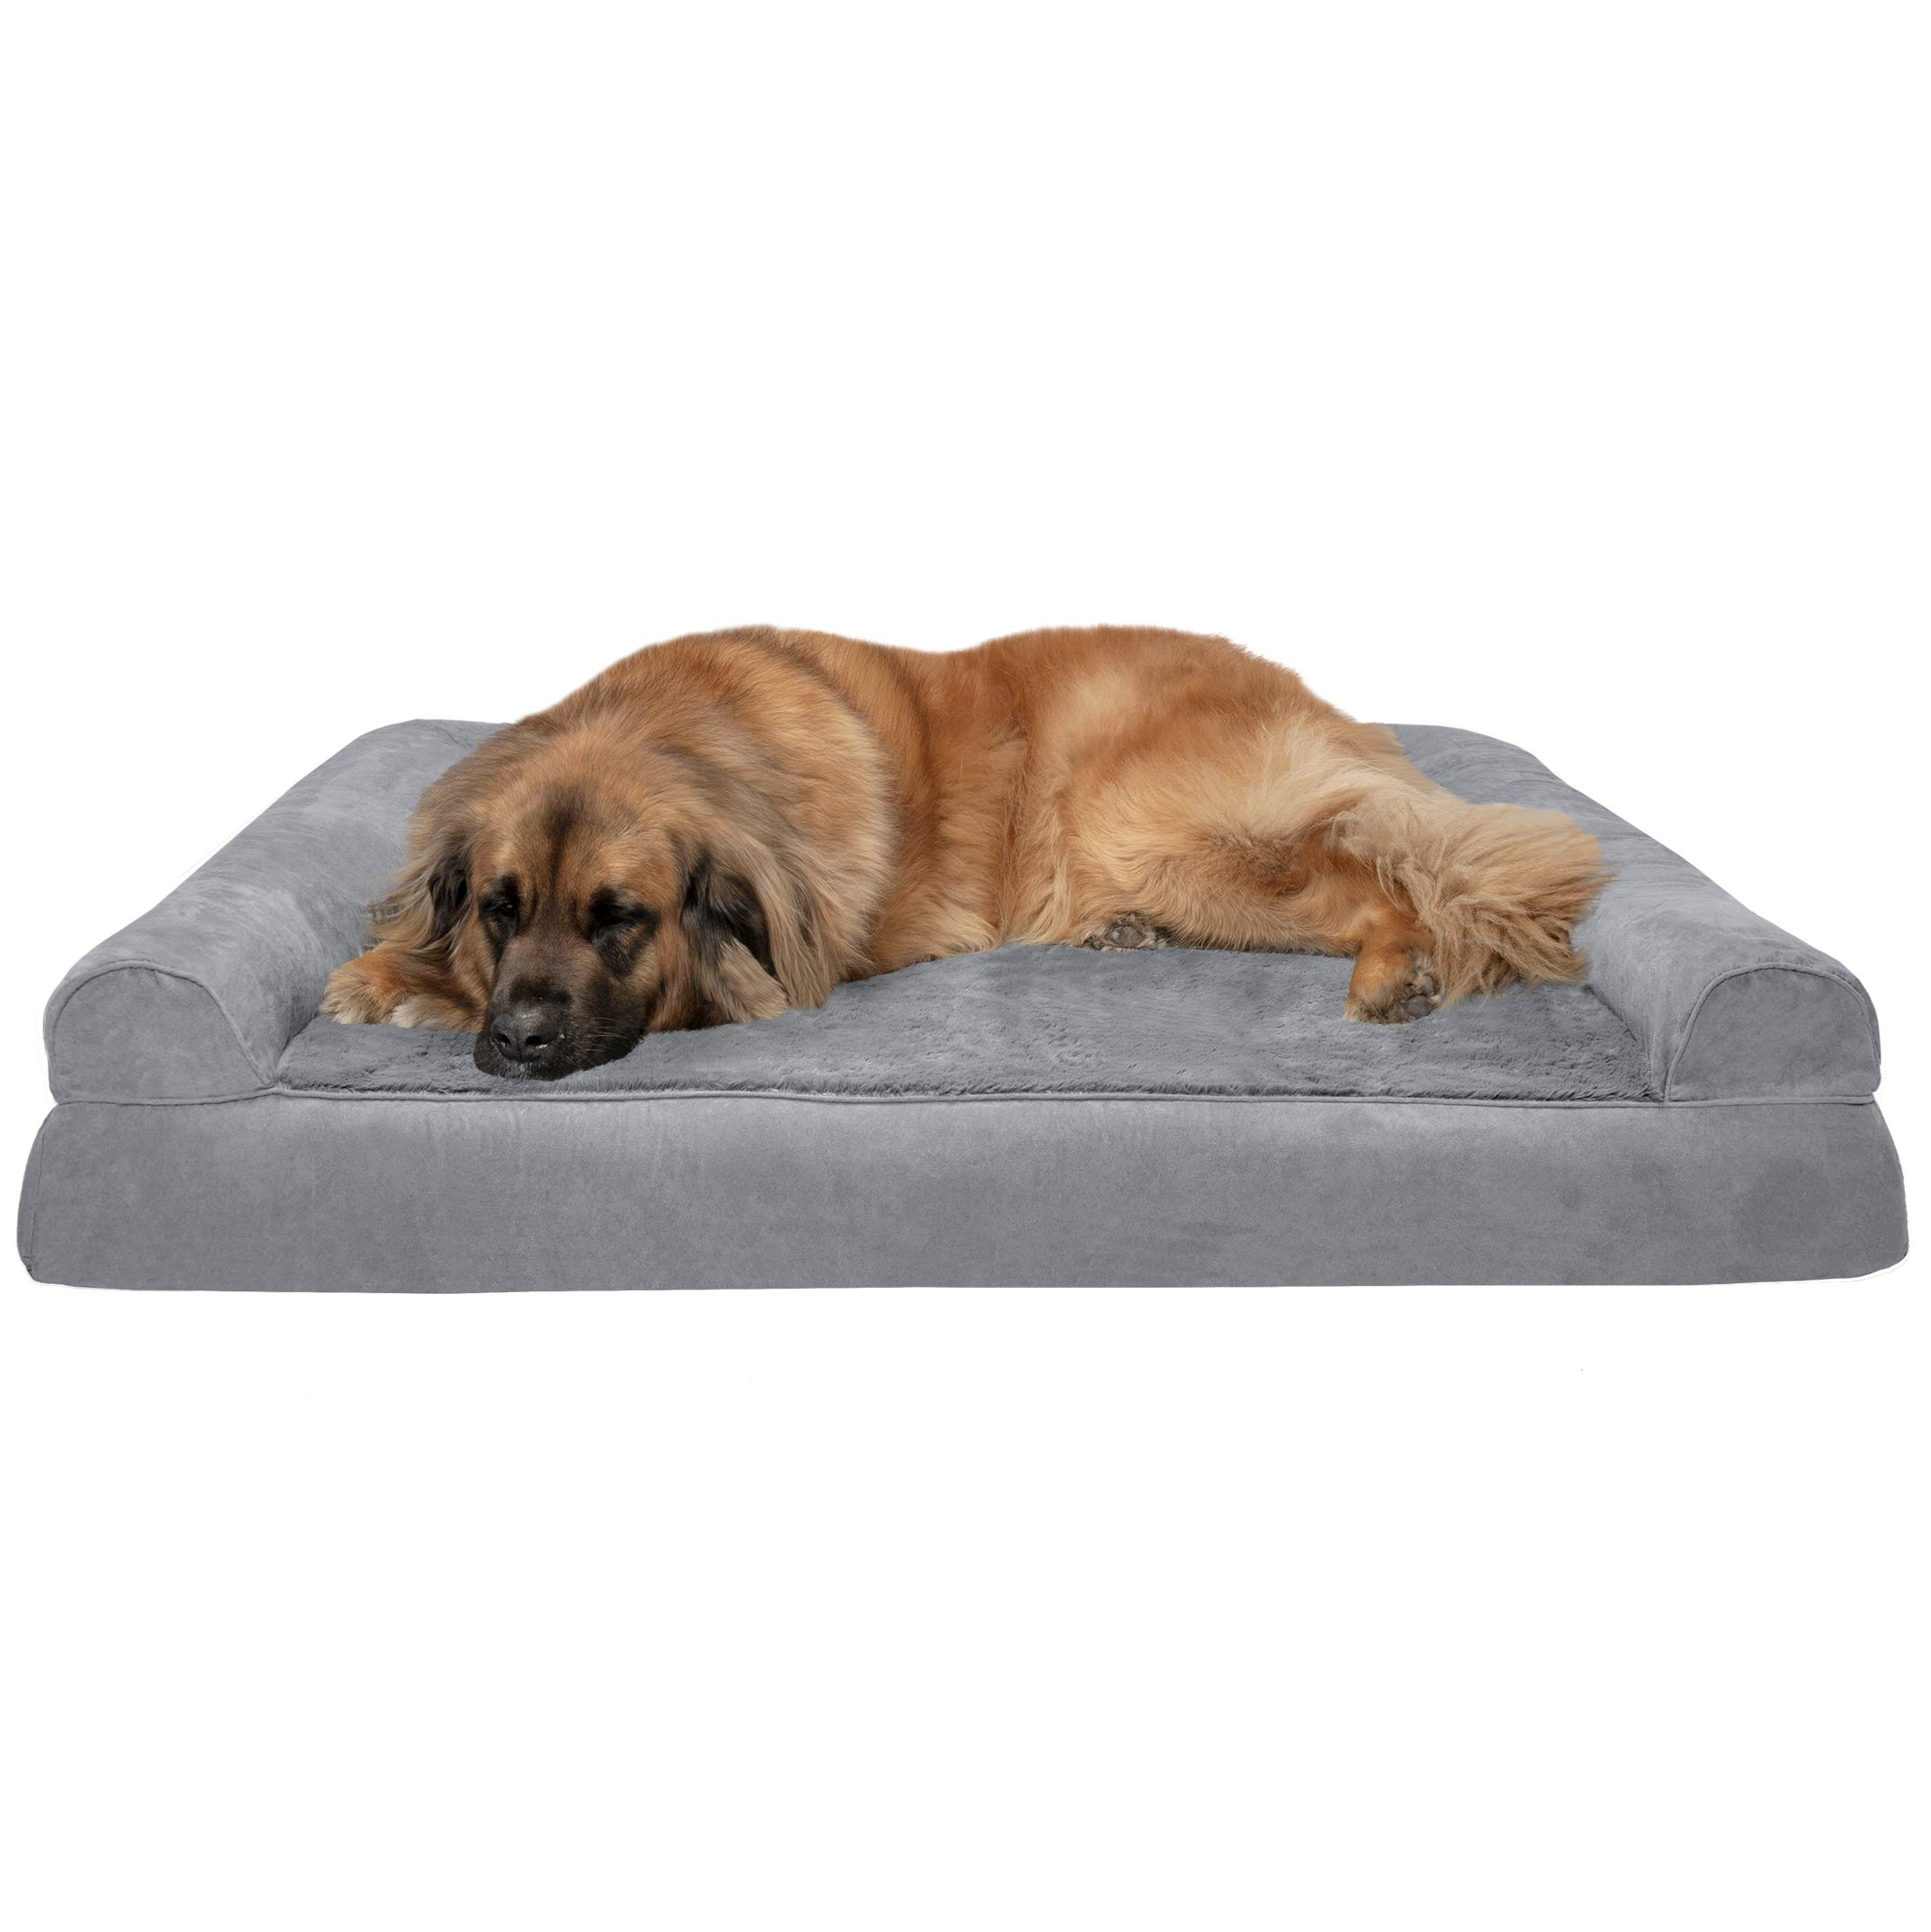 FurHaven Pet Dog Bed | Orthopedic Ultra Plush Sofa-Style Couch Pet Bed for Dogs & Cats, Gray, Jumbo Plus